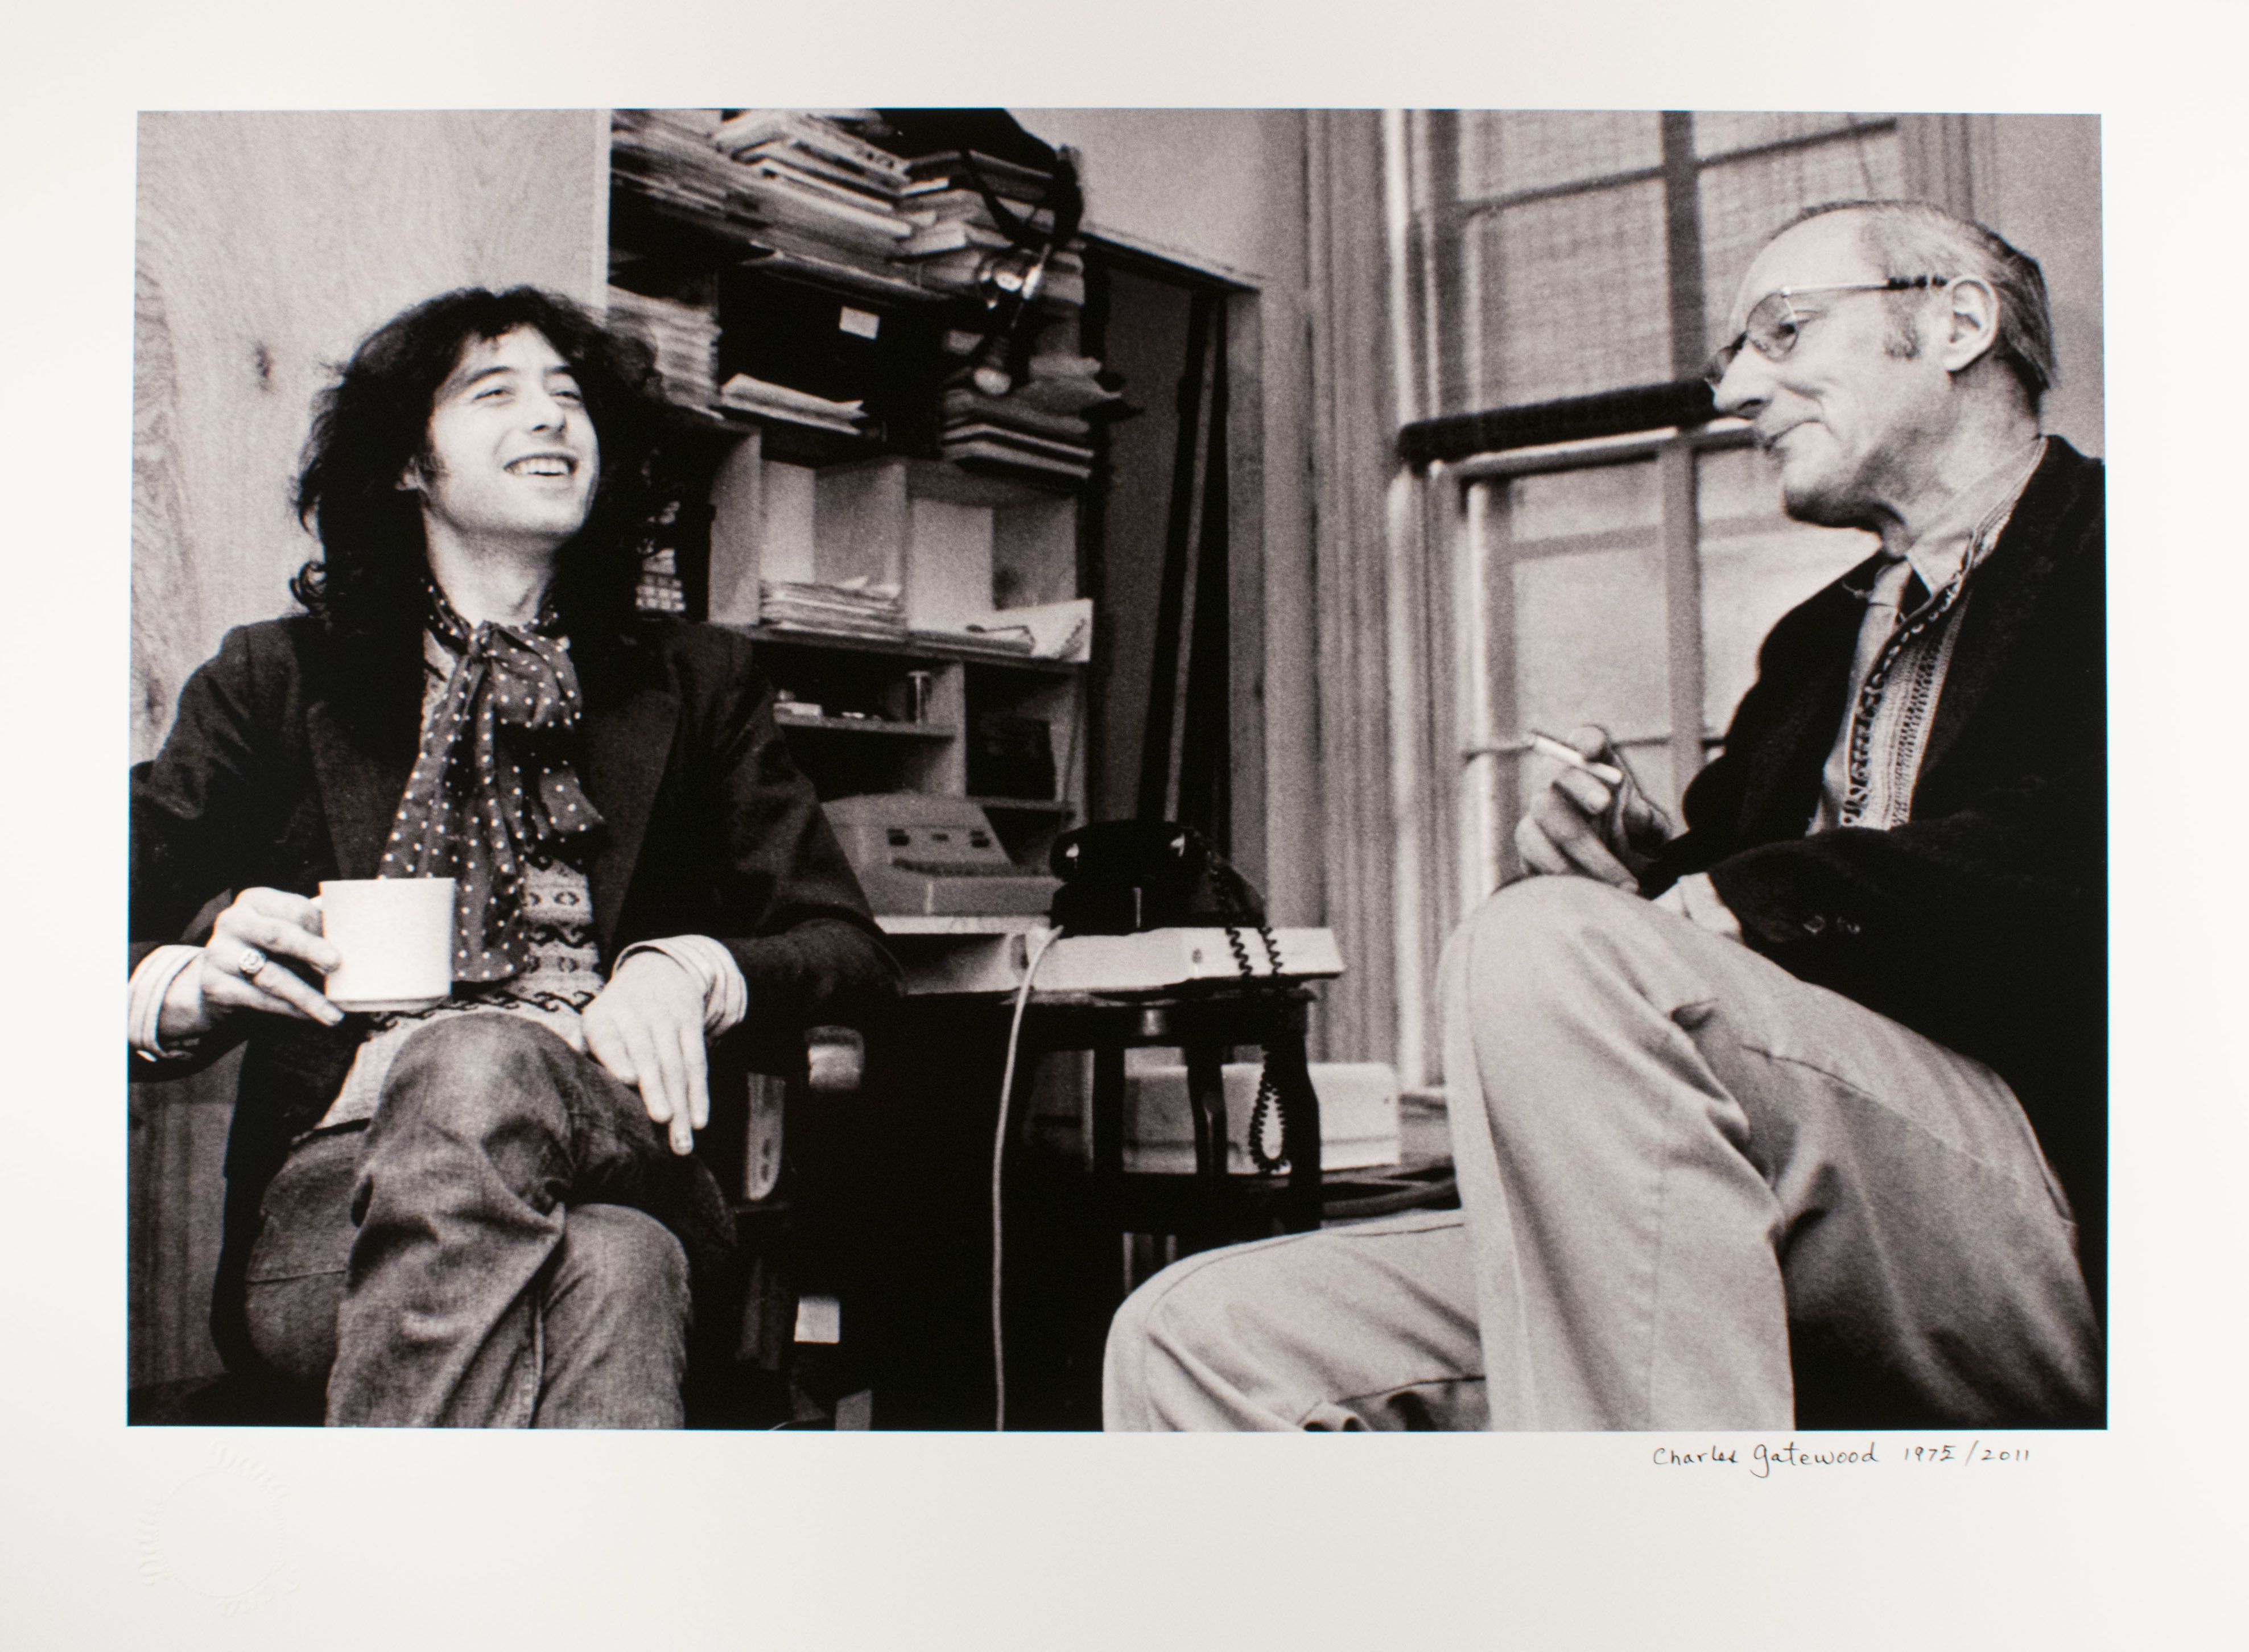 Charles Gatewood (American, 1942 – 2016). William Burroughs and Jimmy Page, New York, 1975 (1)